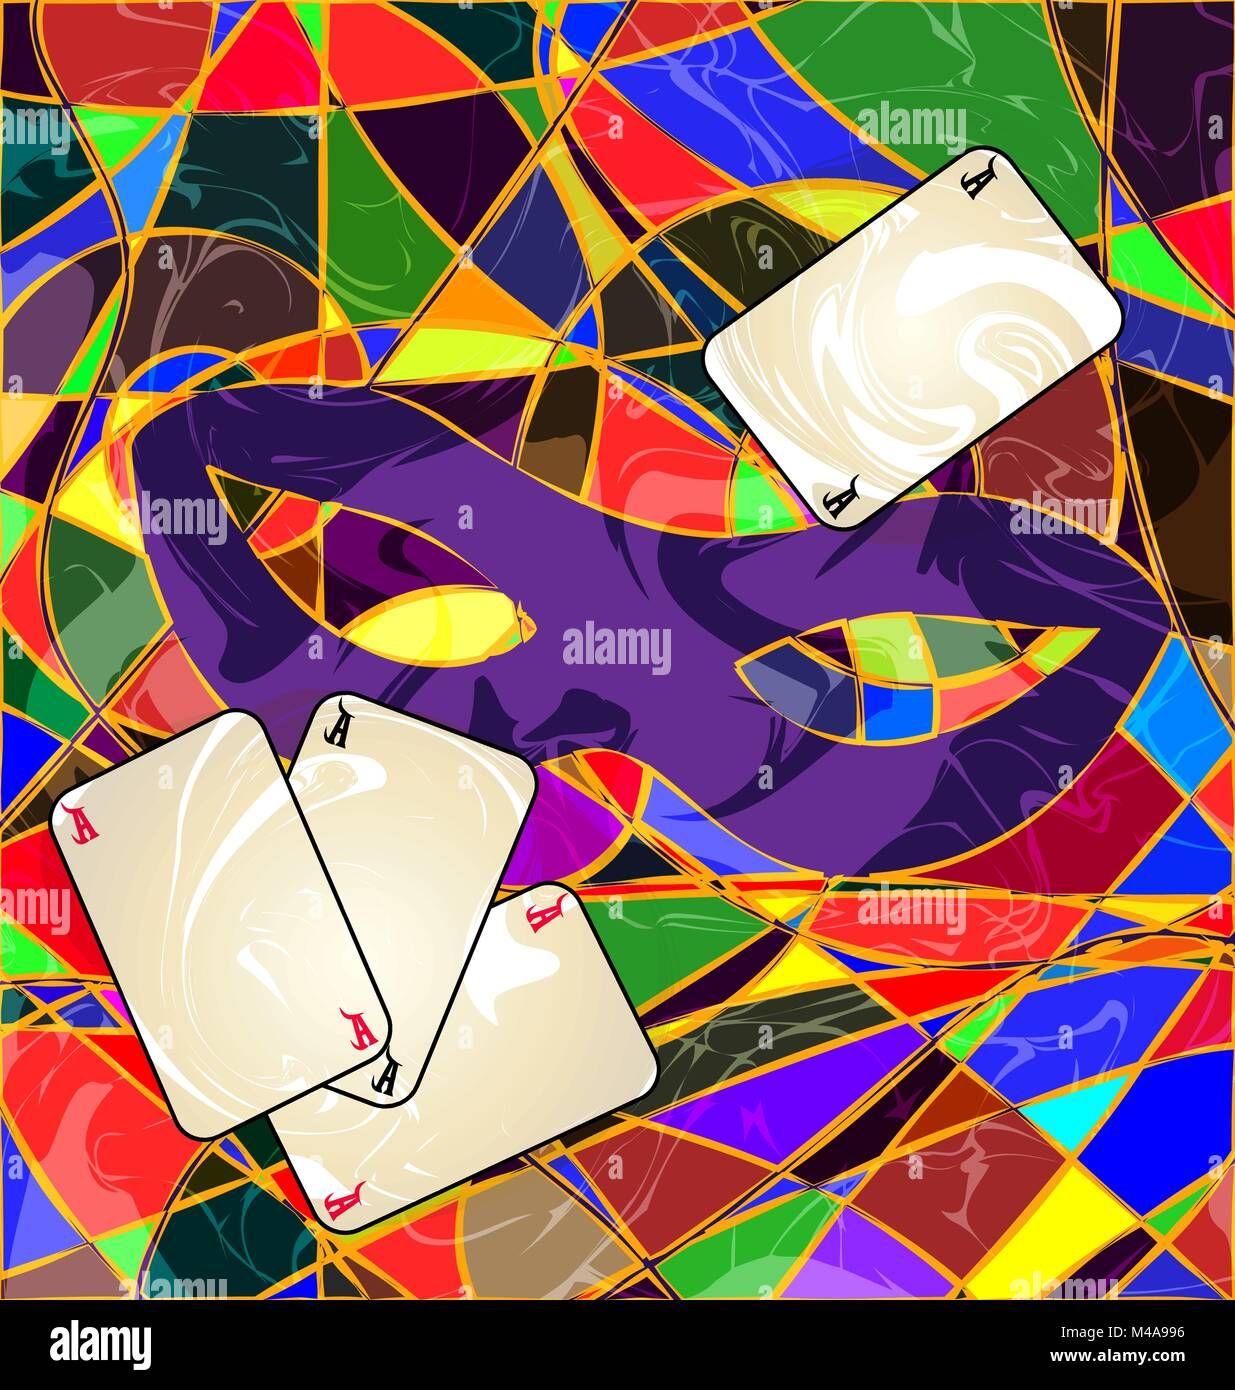 abstract image purple mask and cards - Stock Vector